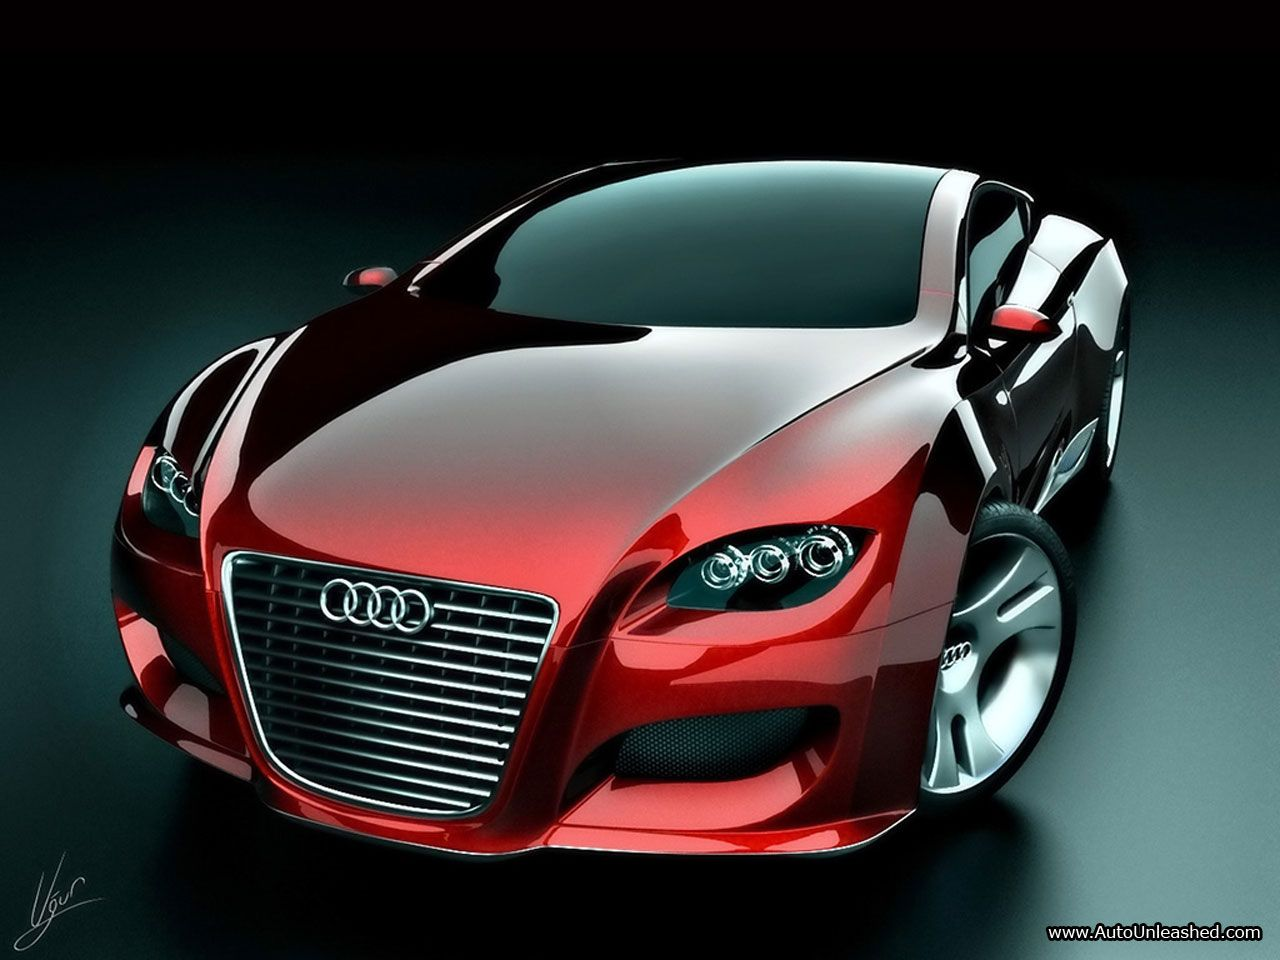 Fifty Shades Of Grey Cars Audi Cars And Dream Cars - Latest cool cars